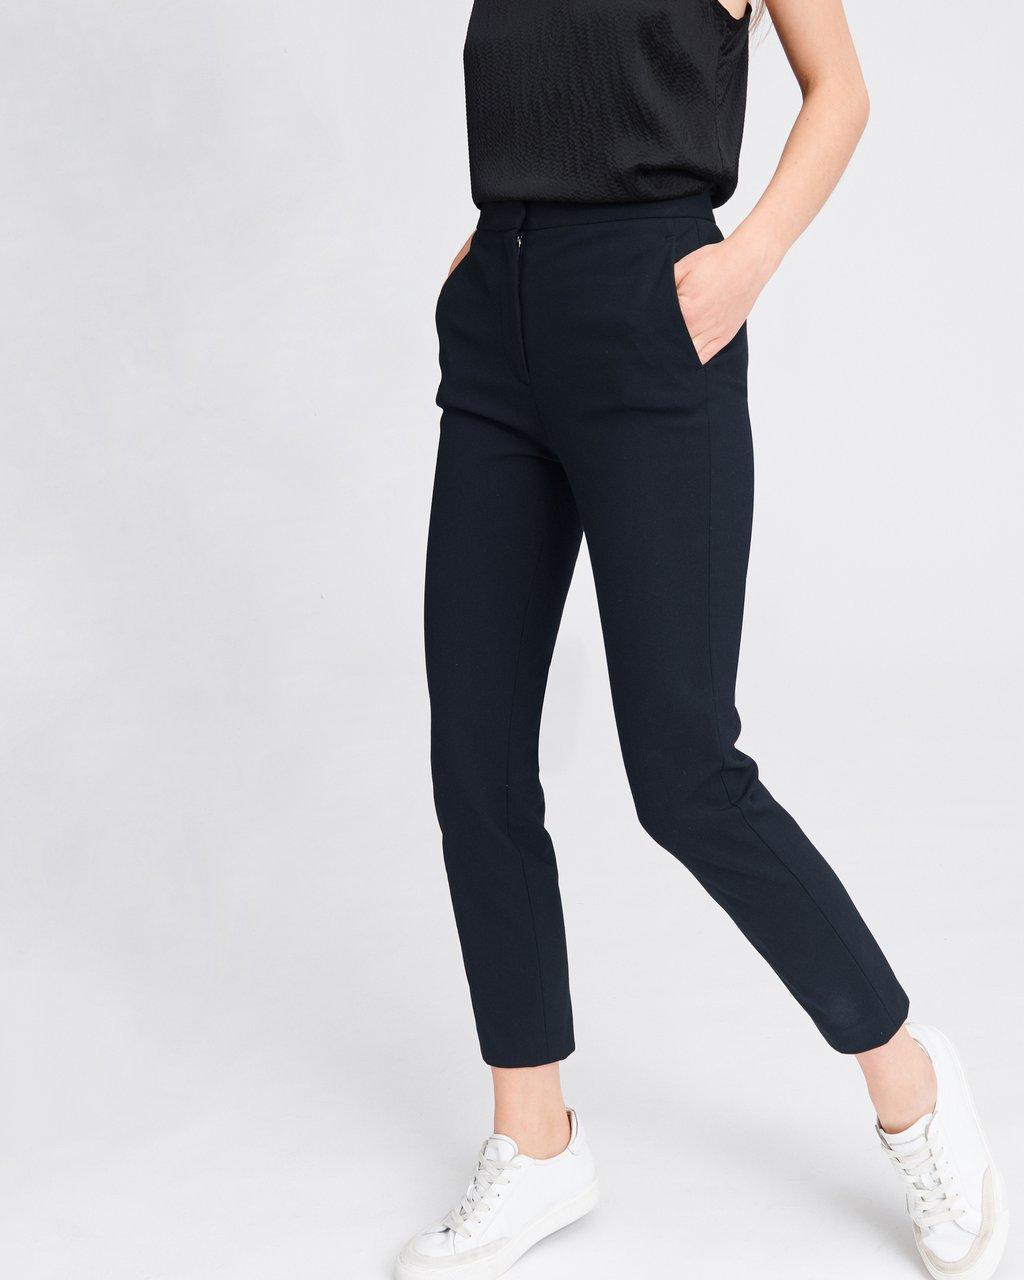 Layla Pant - Equestrian Stretch